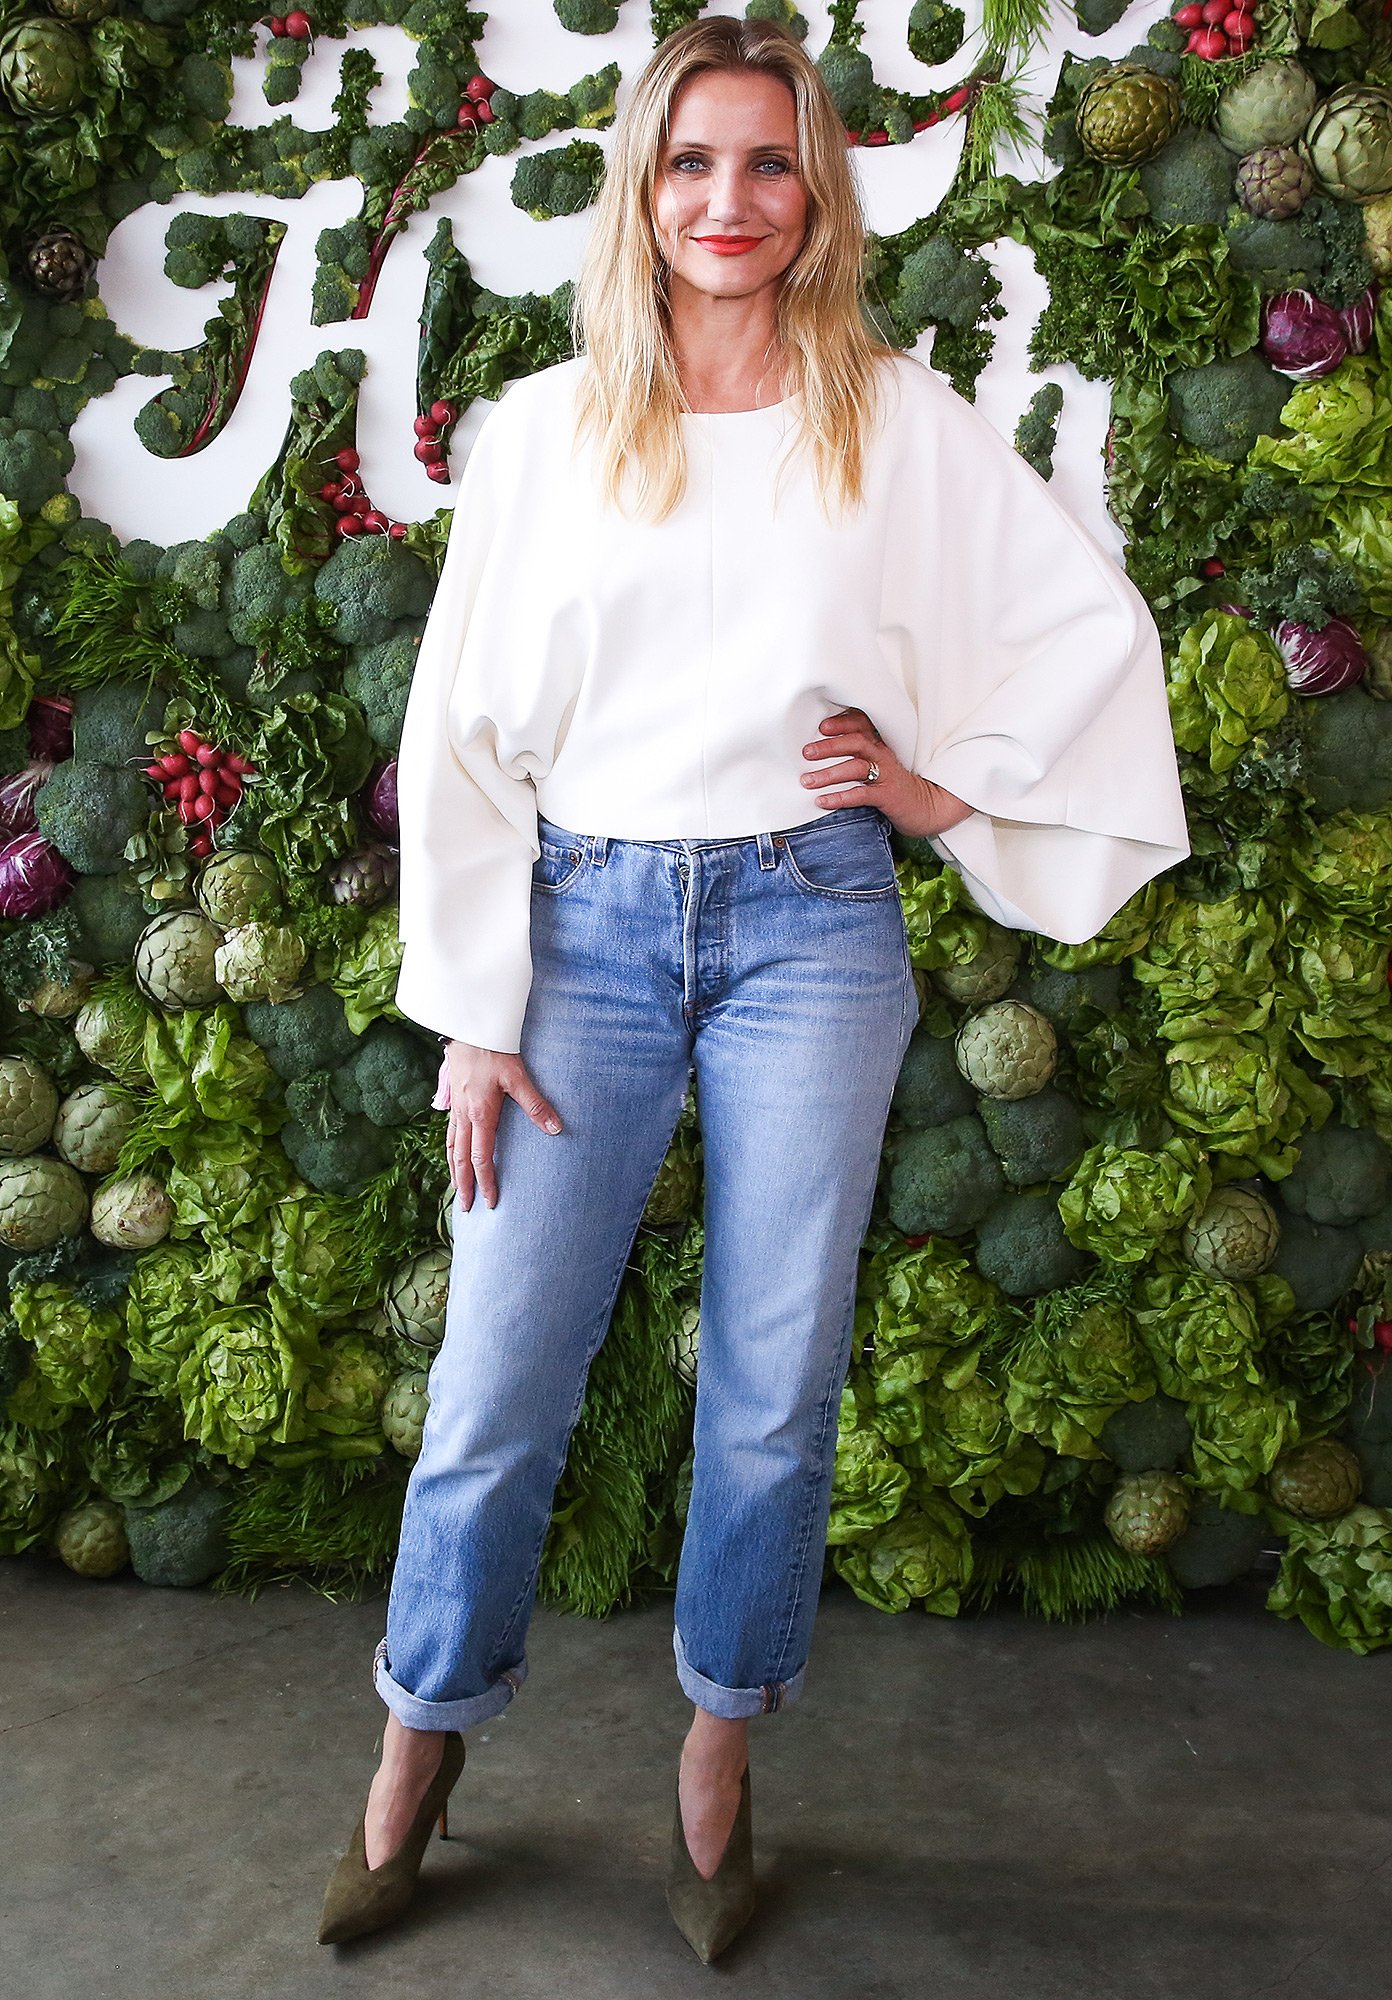 Cameron Diaz wearing a white top and baggy jeans pants.